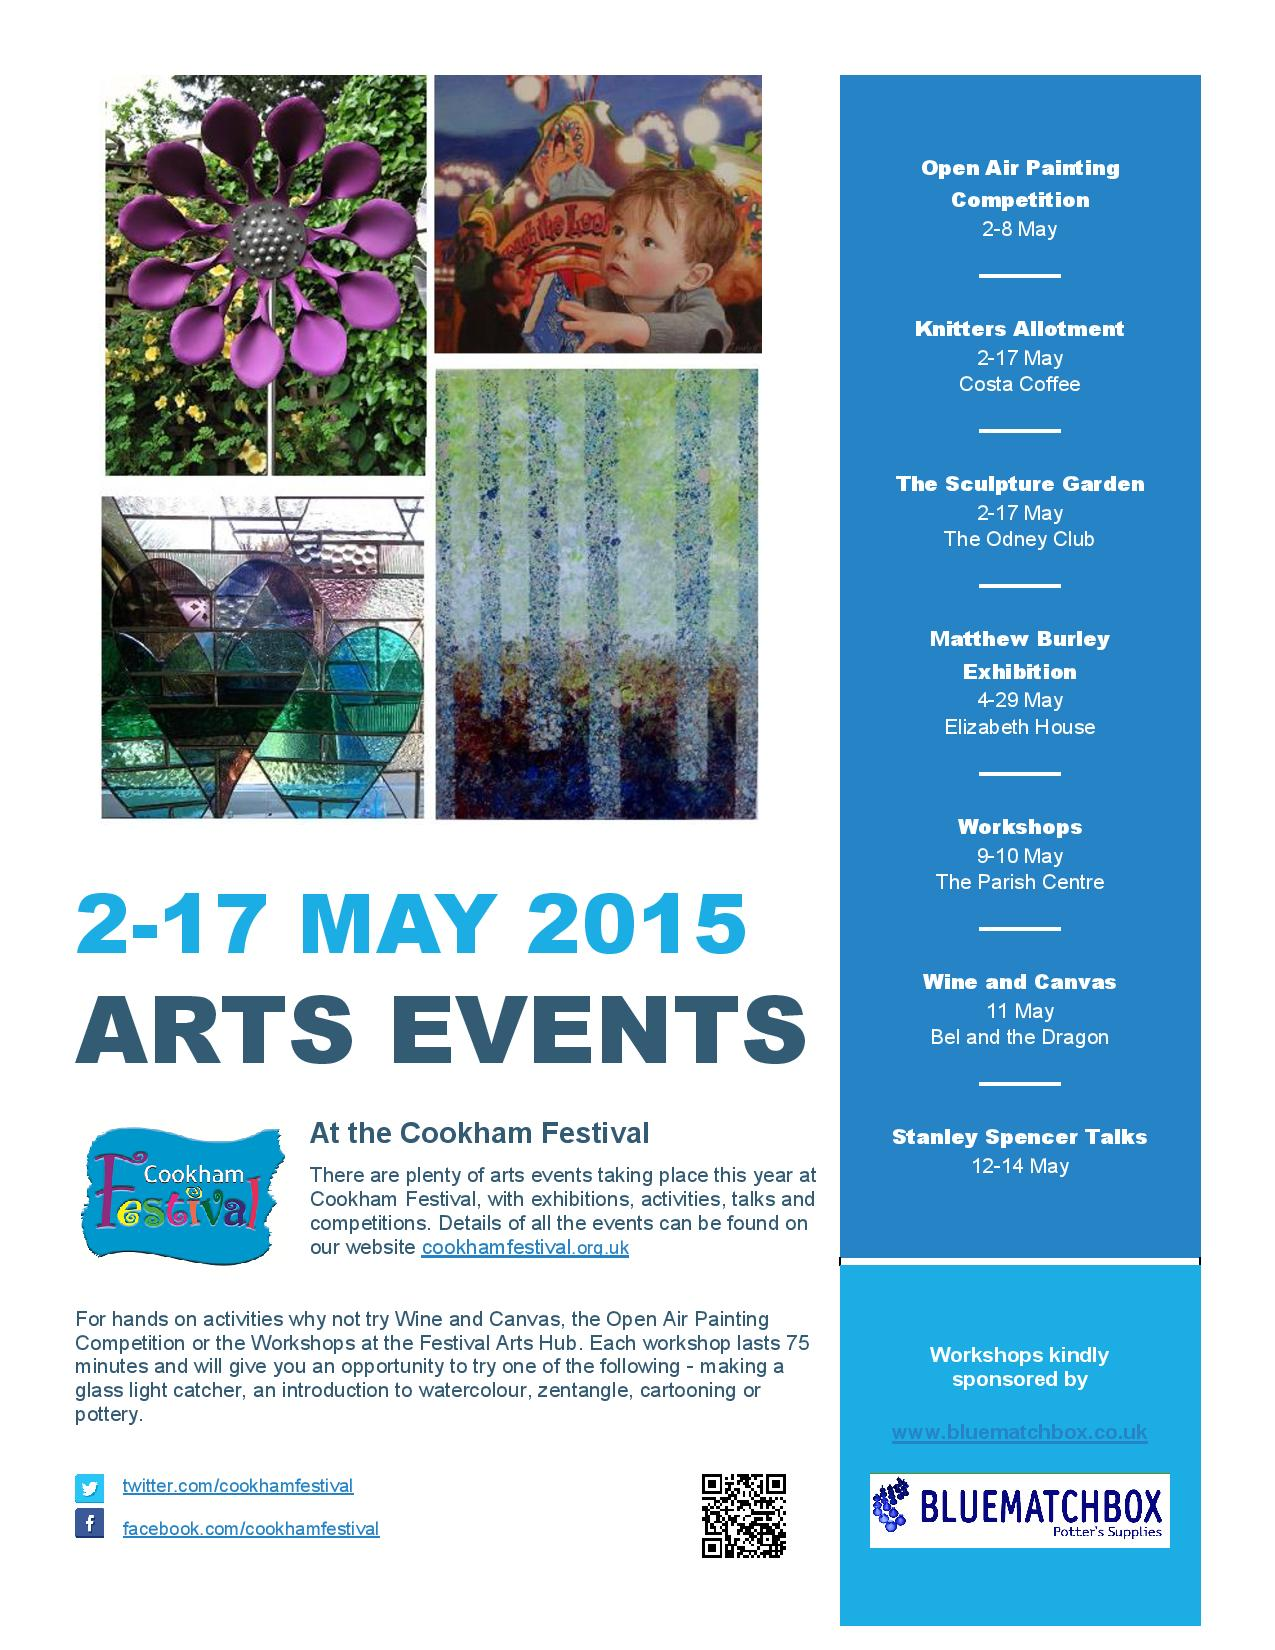 Cookham Festival Arts Events